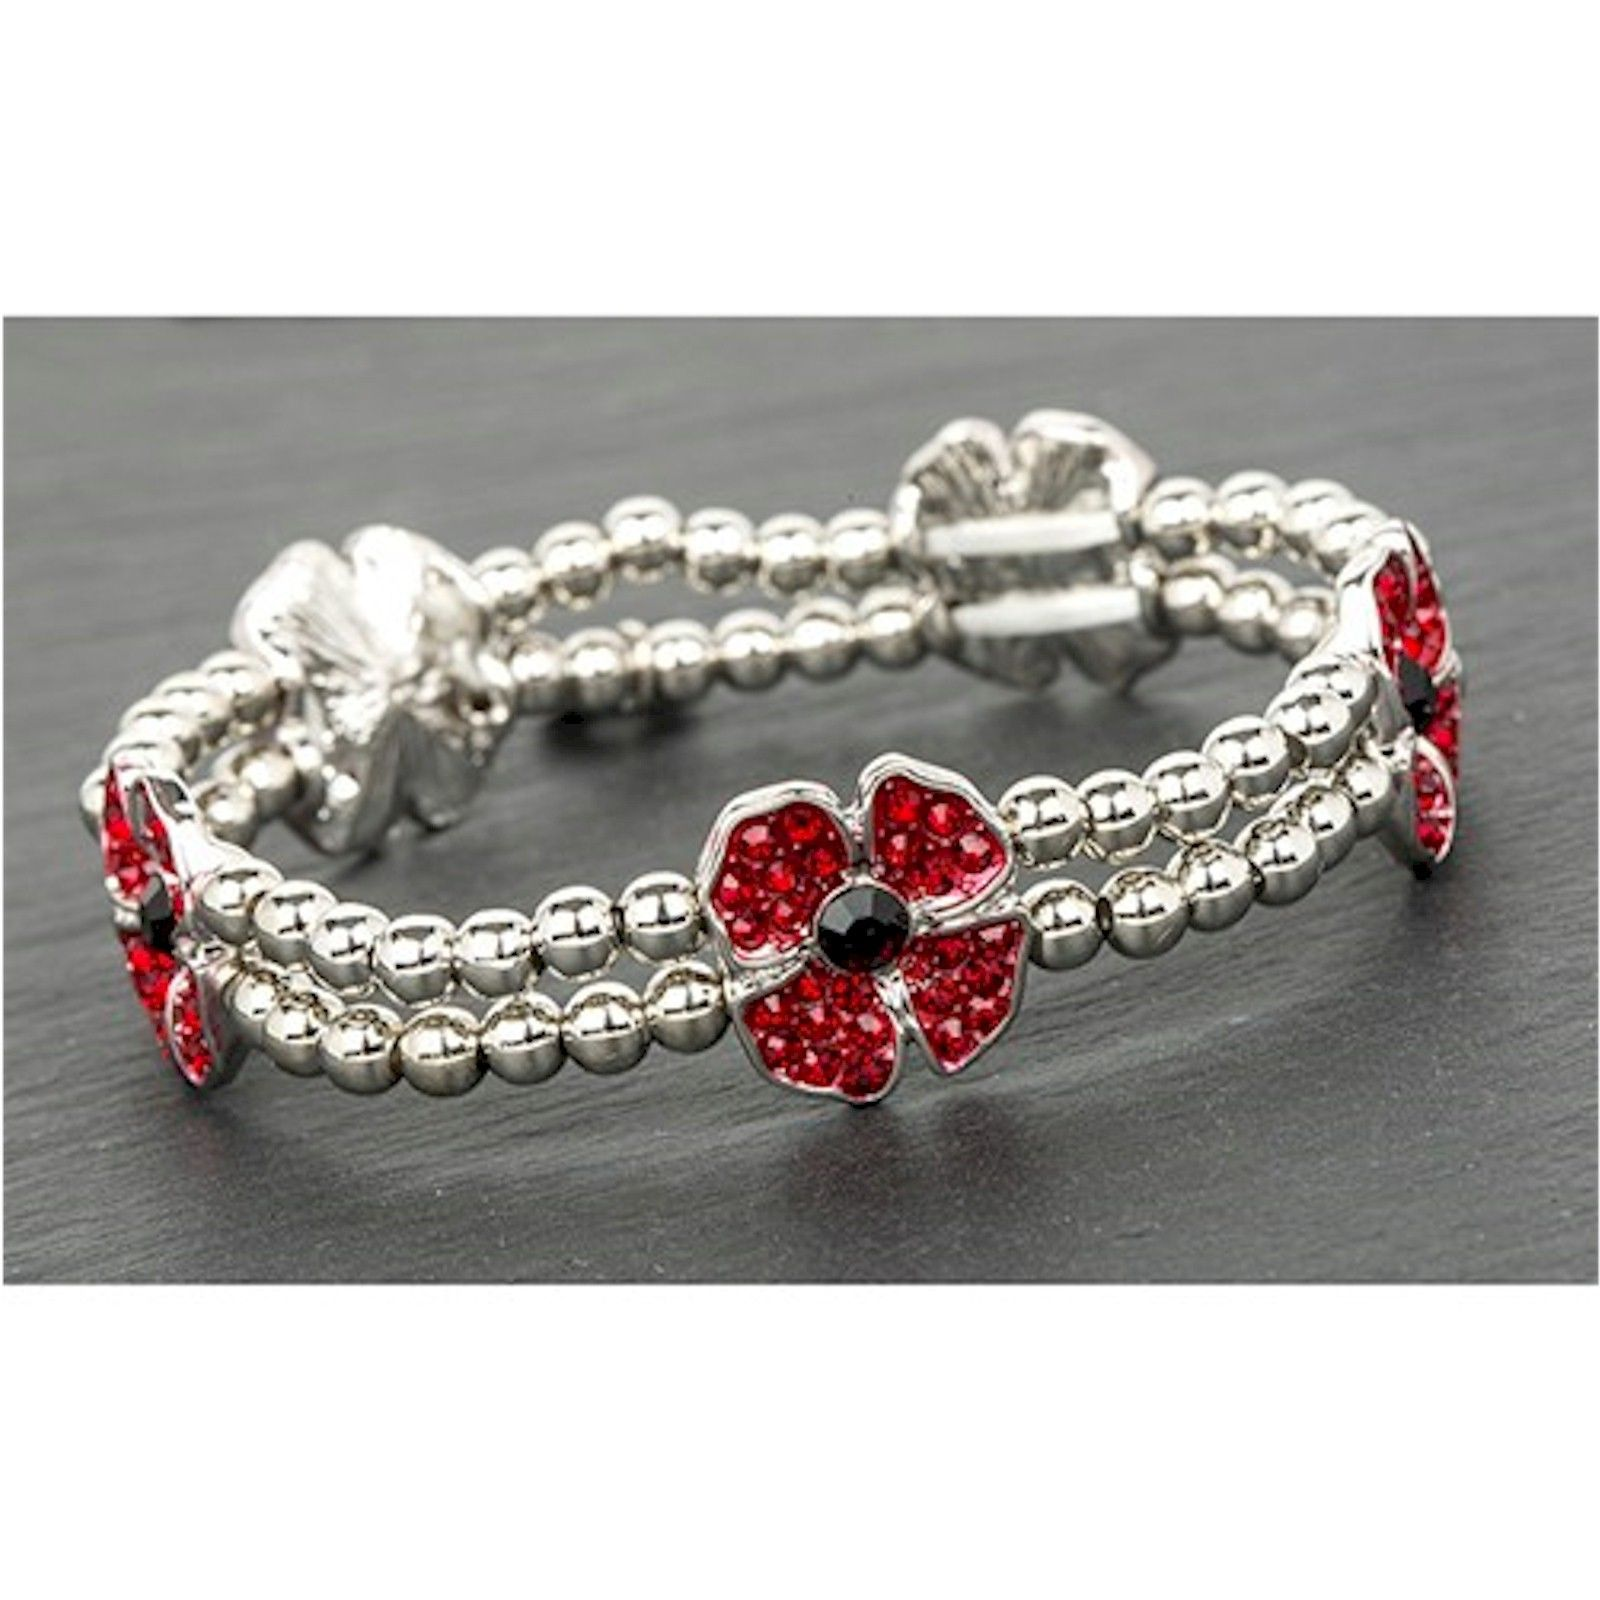 Equilibrium Ornate Poppy Bangle qD3caR3C